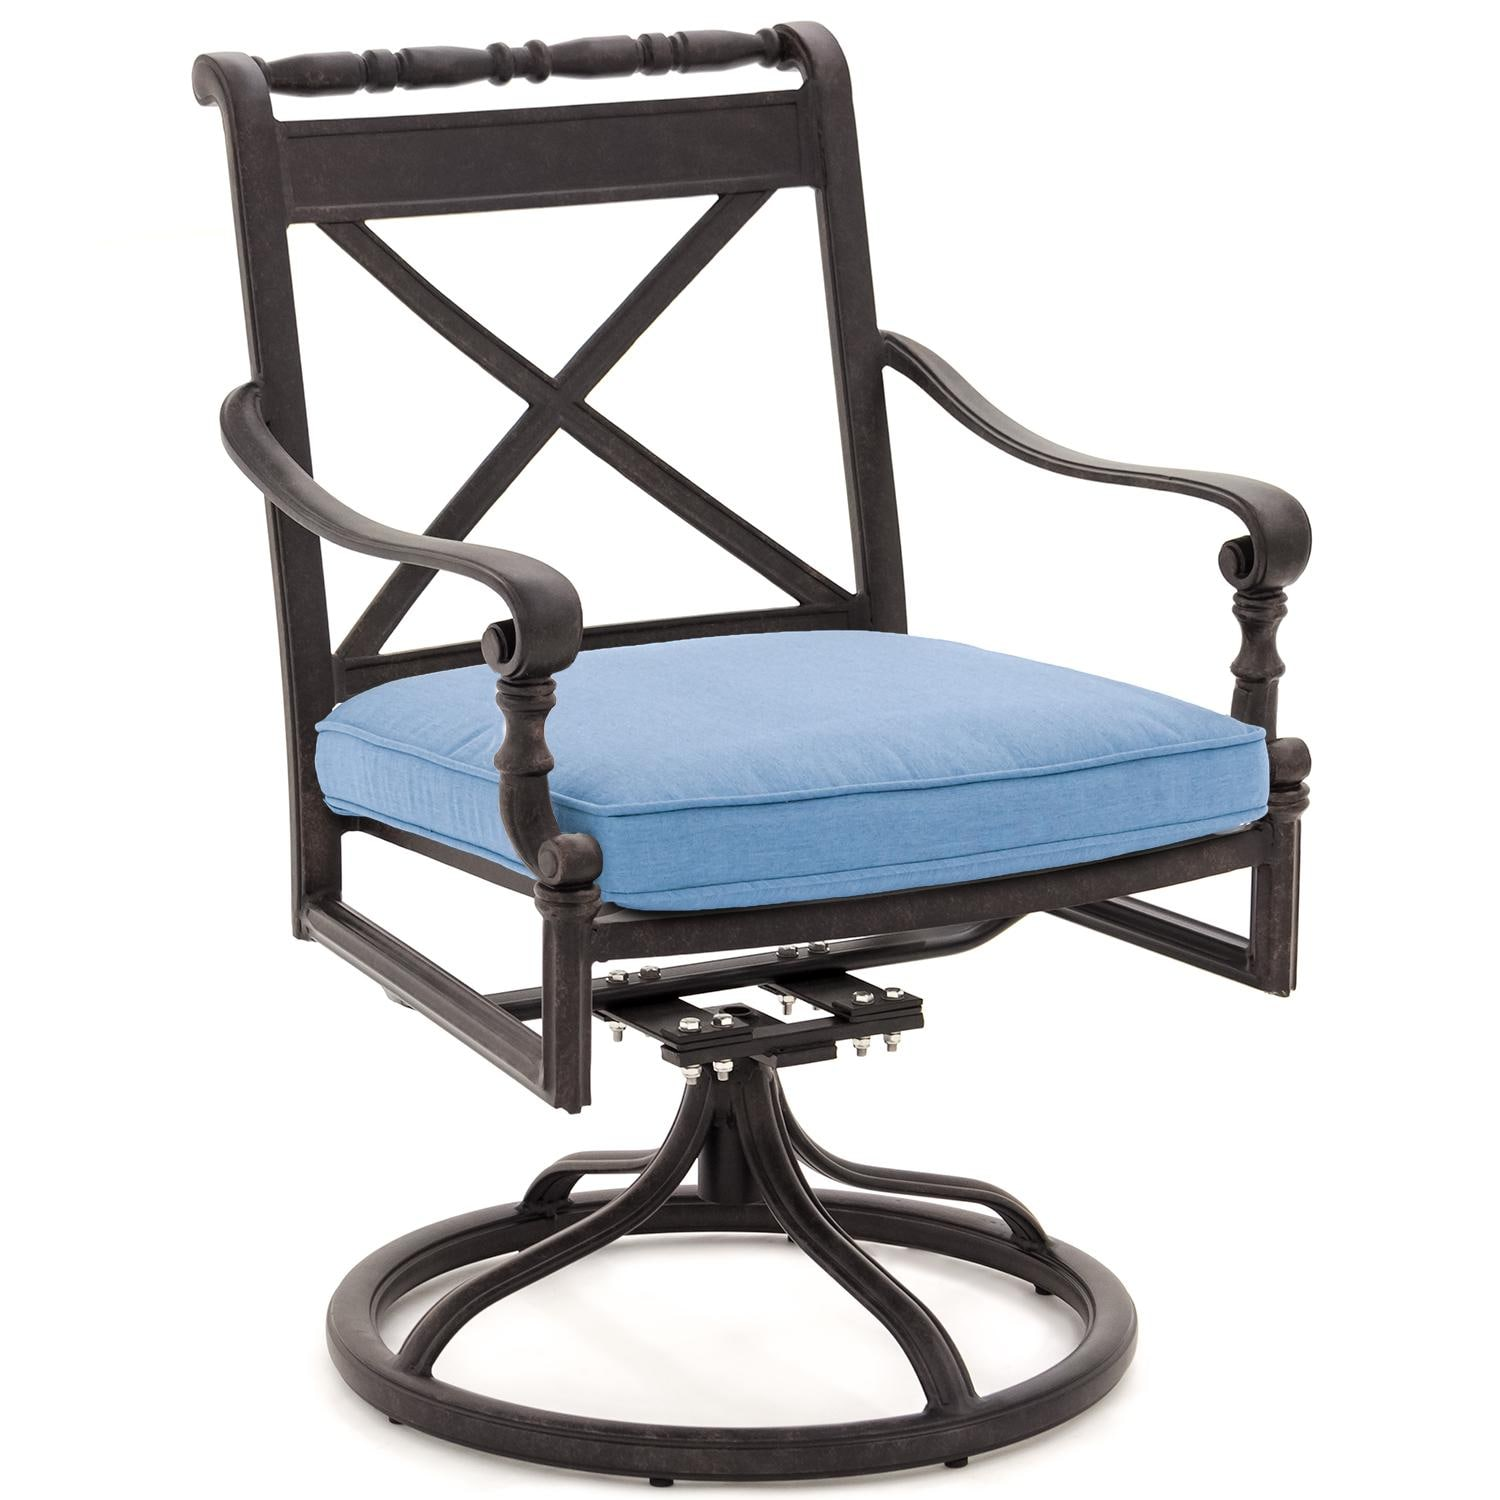 Superb img of Carrolton Cast Aluminum Swivel Rocker Patio Dining Chair By Lakeview  with #3E638D color and 1500x1500 pixels